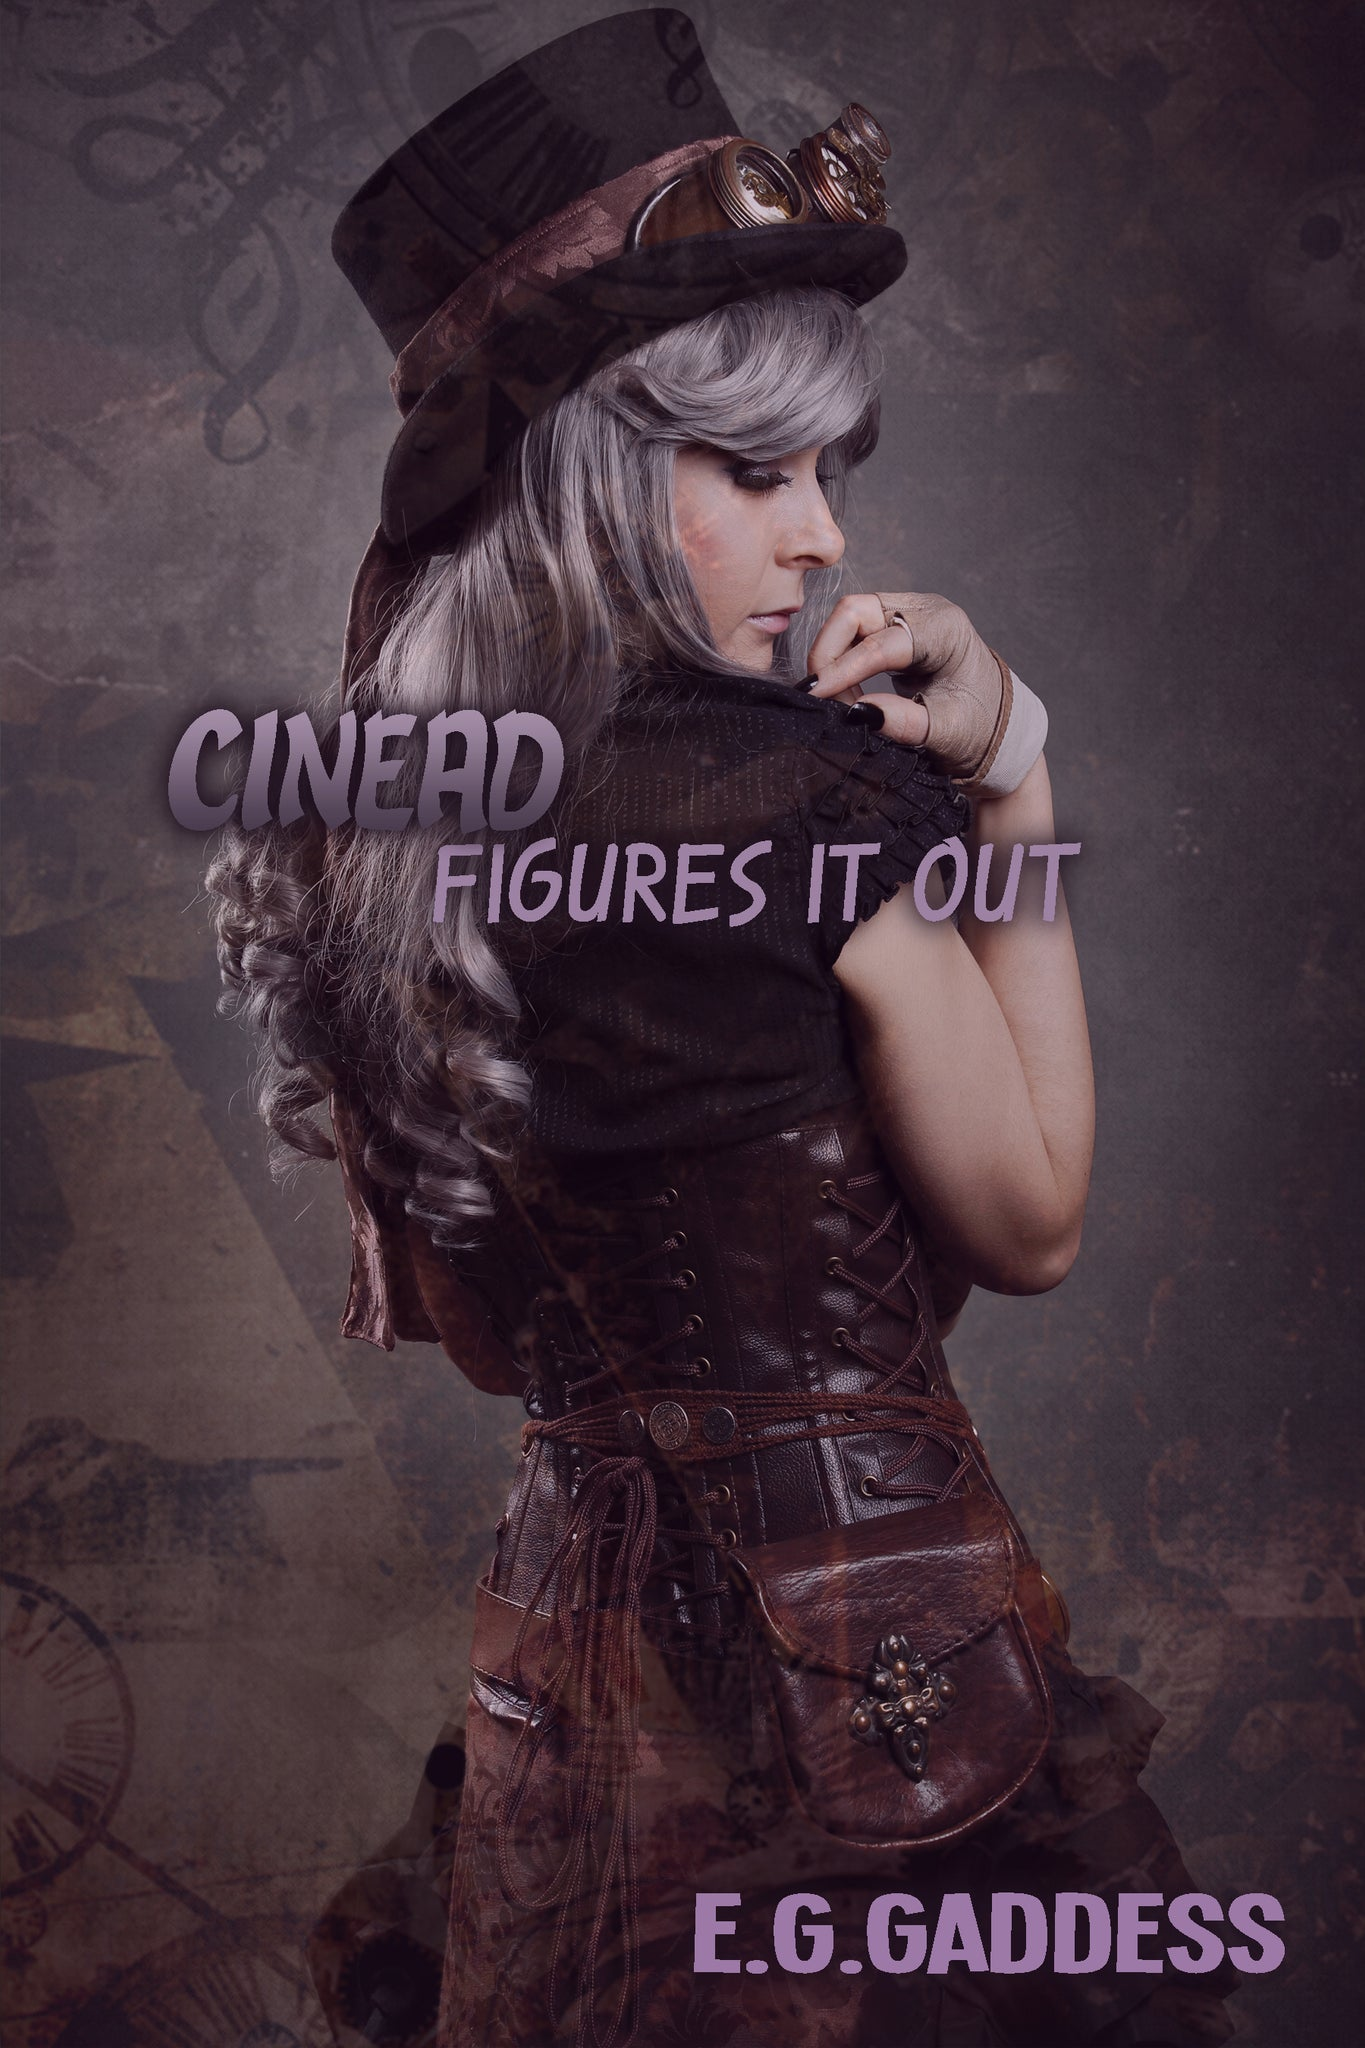 Cinead Figures it Out - Trade Paperback